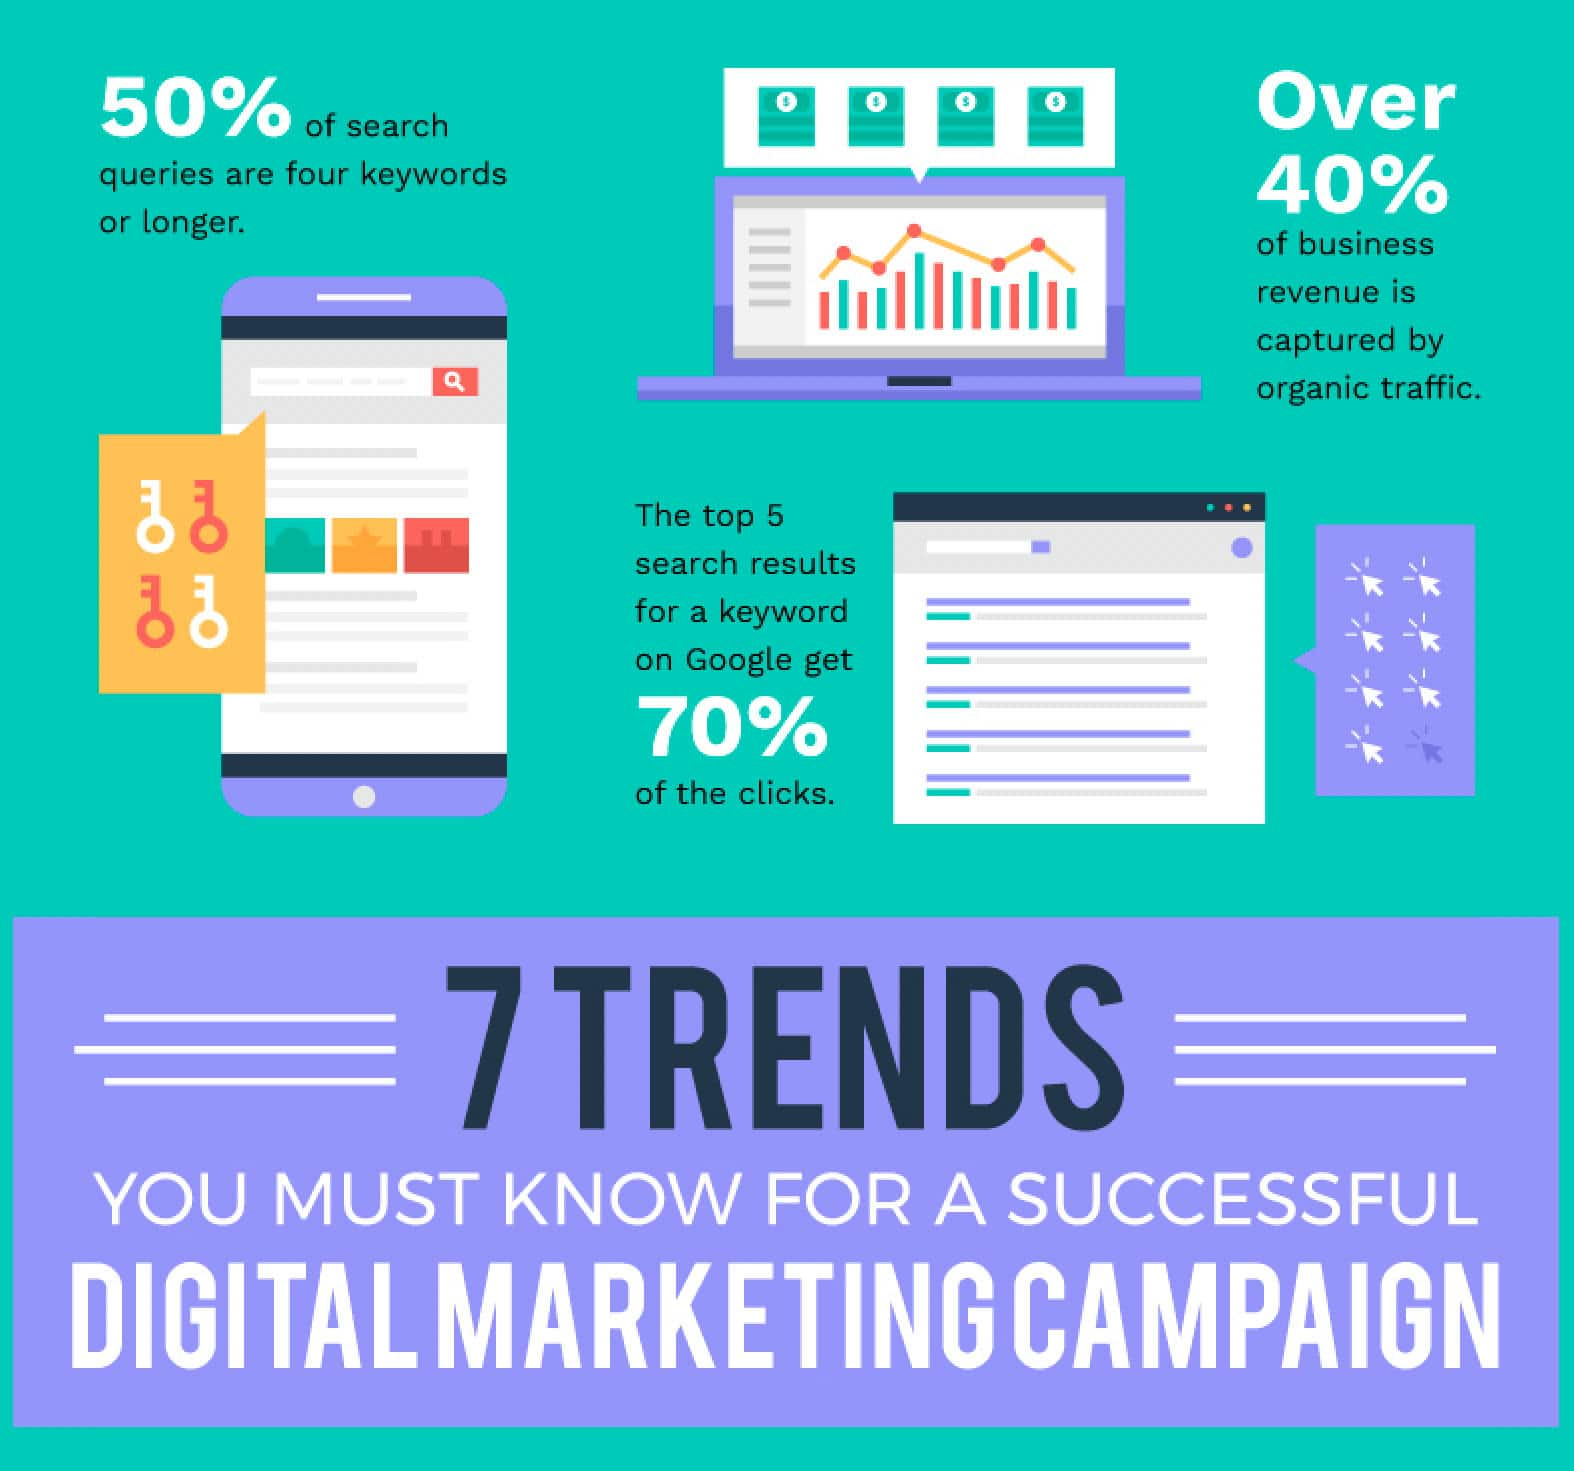 7 Digital Marketing Trends Infographic